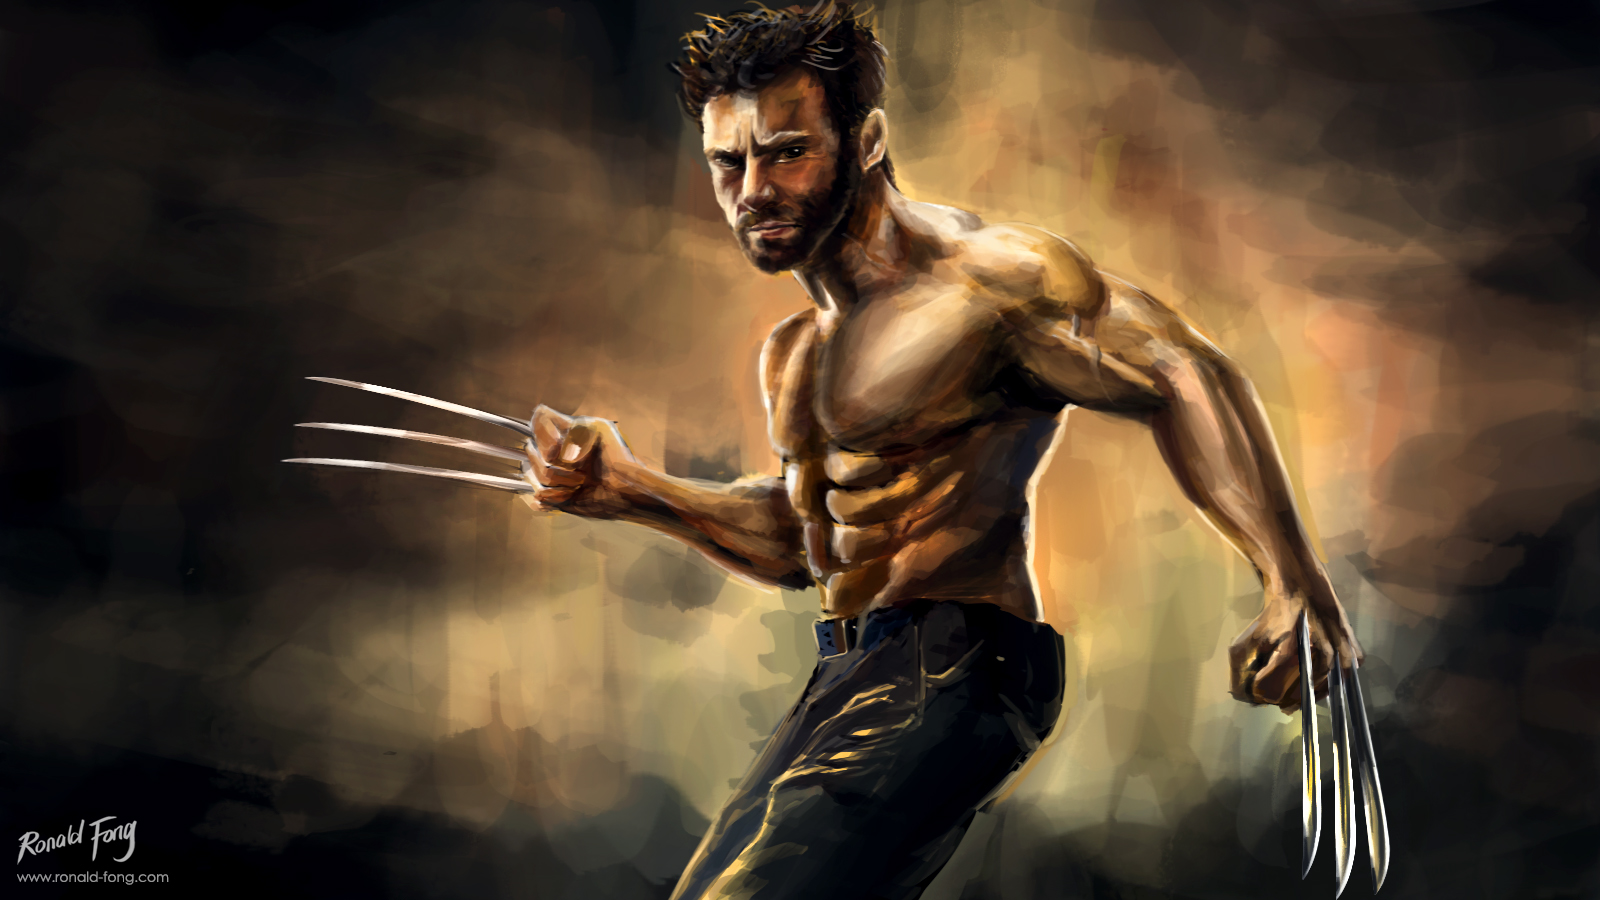 The Wolverine Digital Painting Ronald Fong